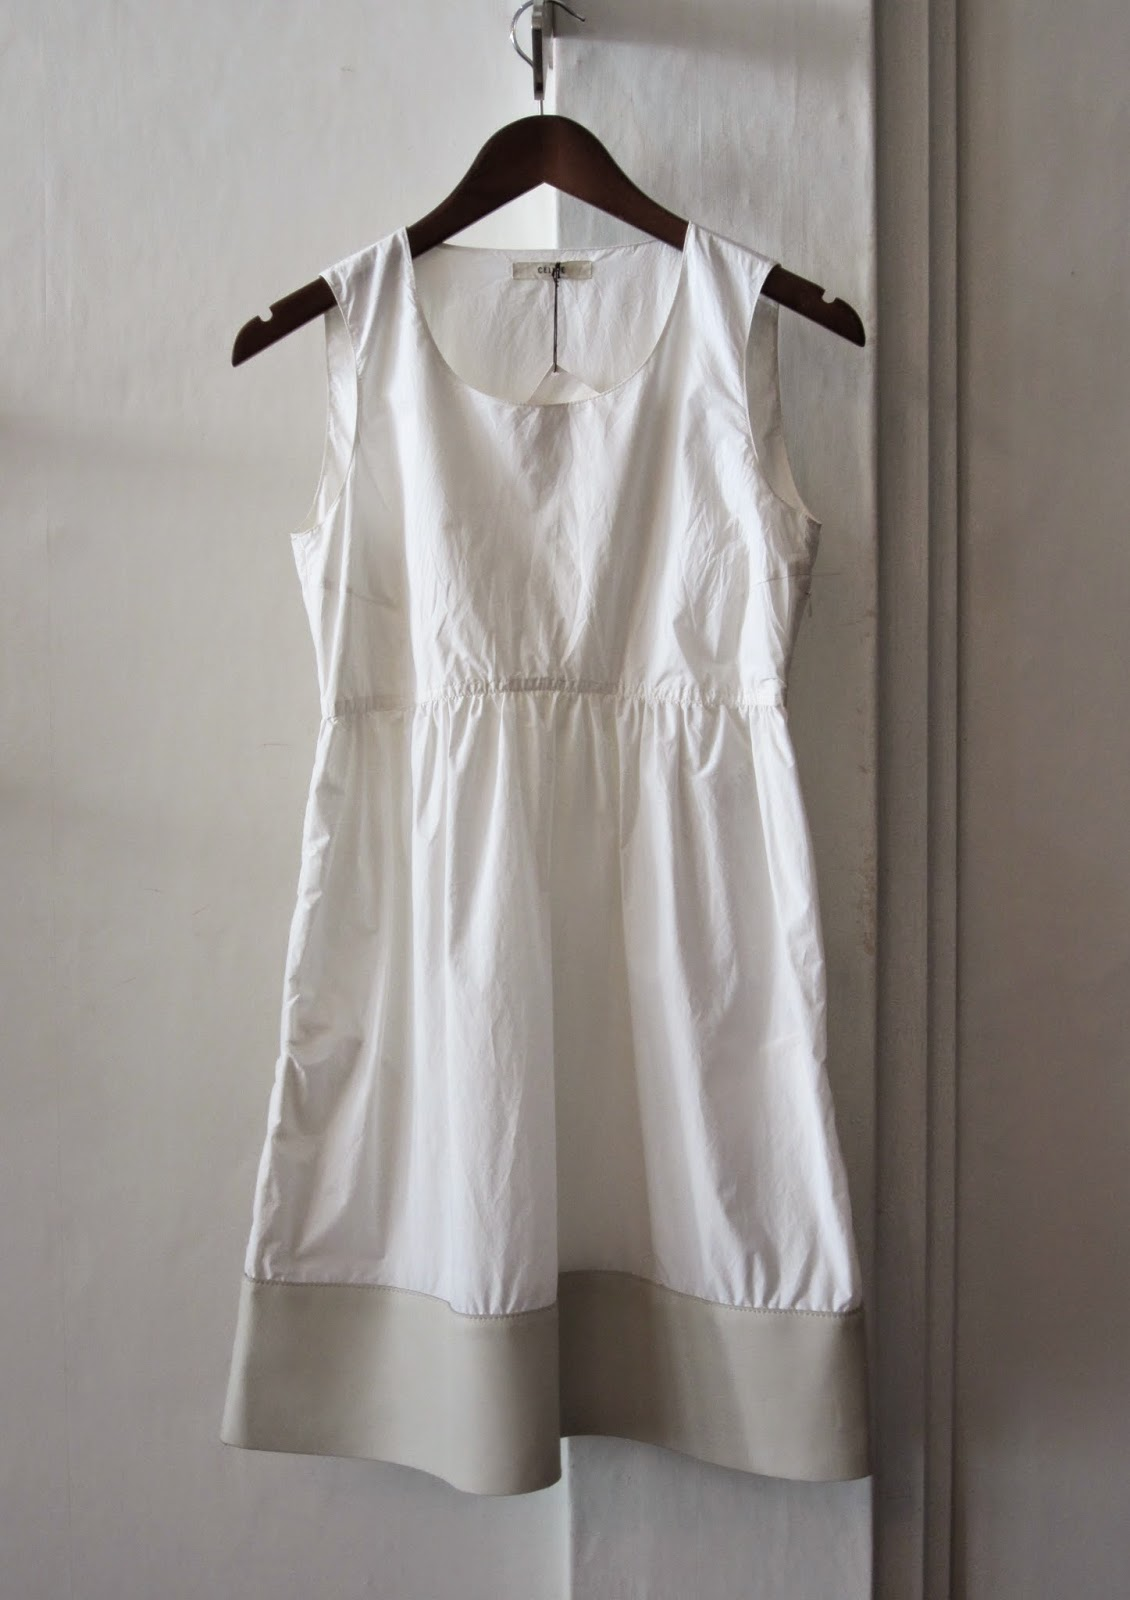 Céline White Cotton & Leather Dress